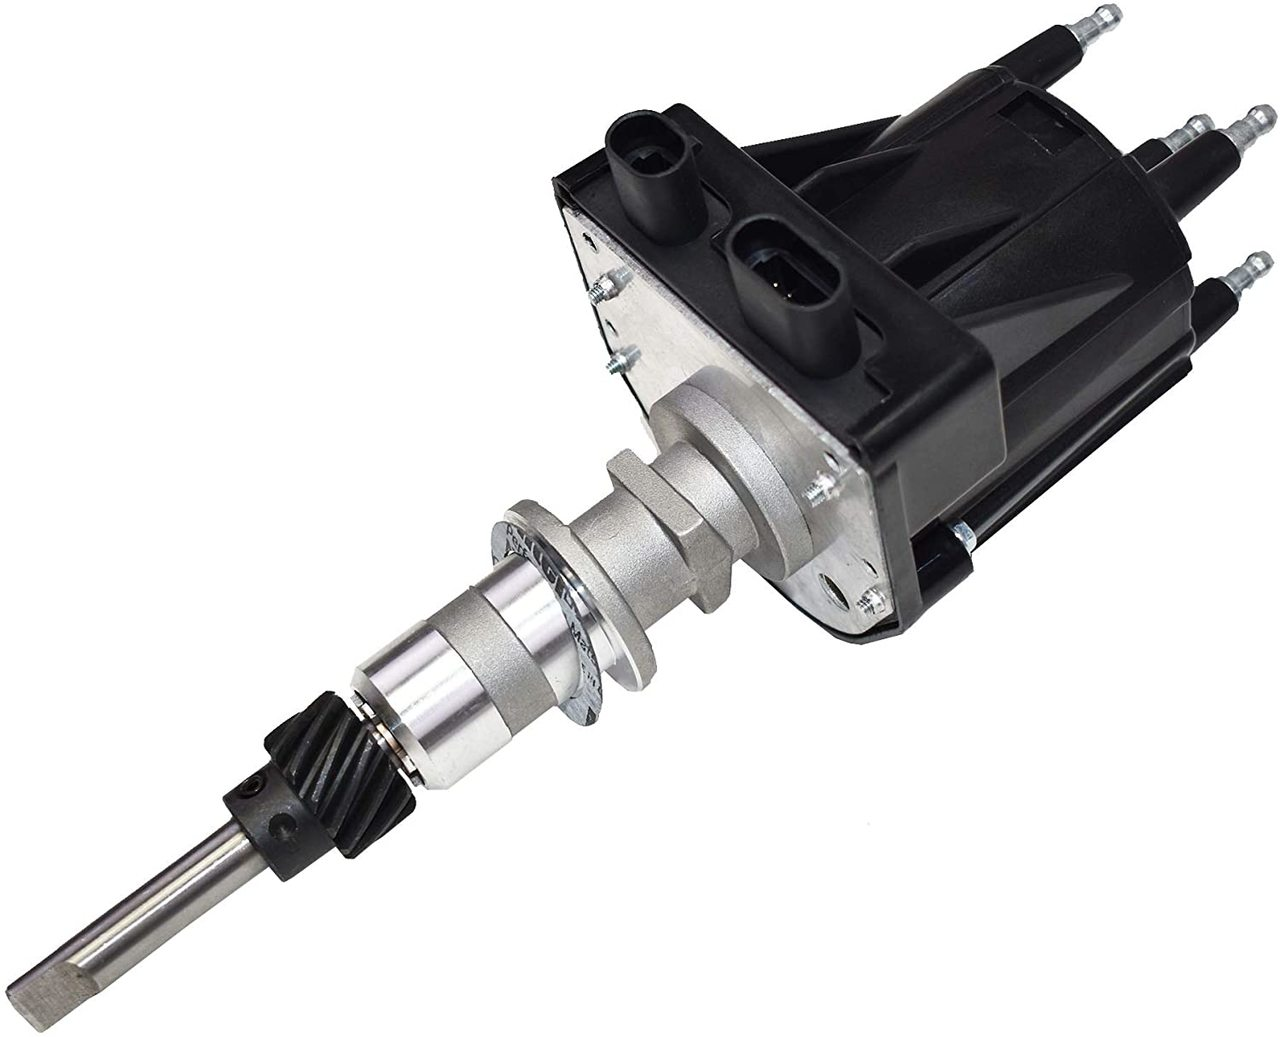 A-Team Performance EST Marine Electronic Ignition Distributor EFI Compatible with Mercruiser Chevy Volvo Penta OMC Indmar 2.5L & 3.0L Delco EST For 4 Cylinder Applications 18-5475, 817377 Black Cap